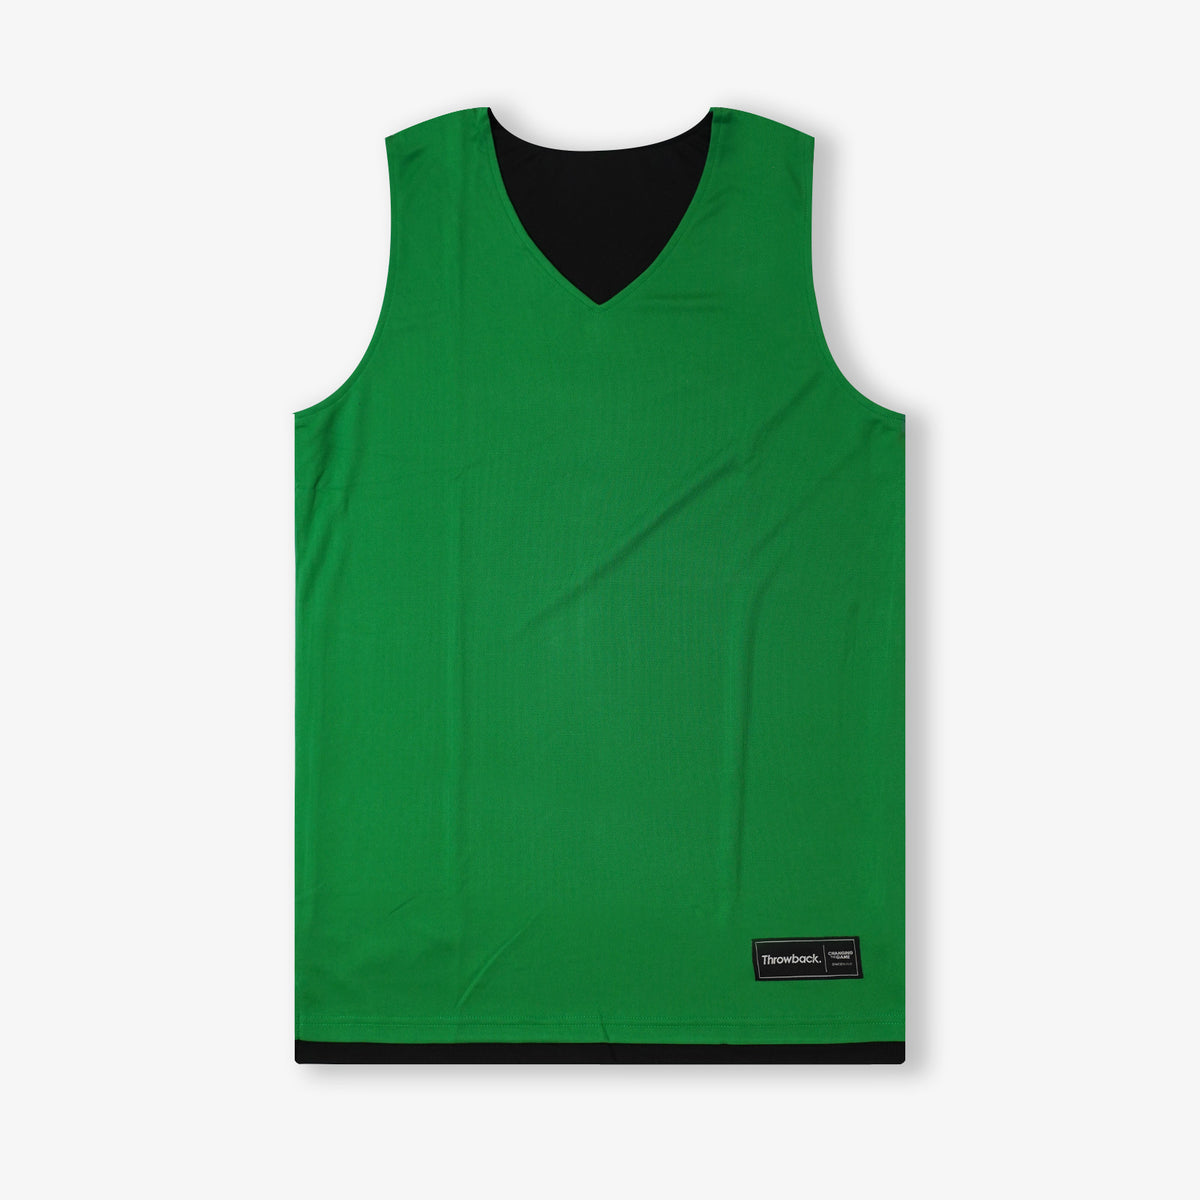 Throwback Reversible Jersey - Emerald/Black